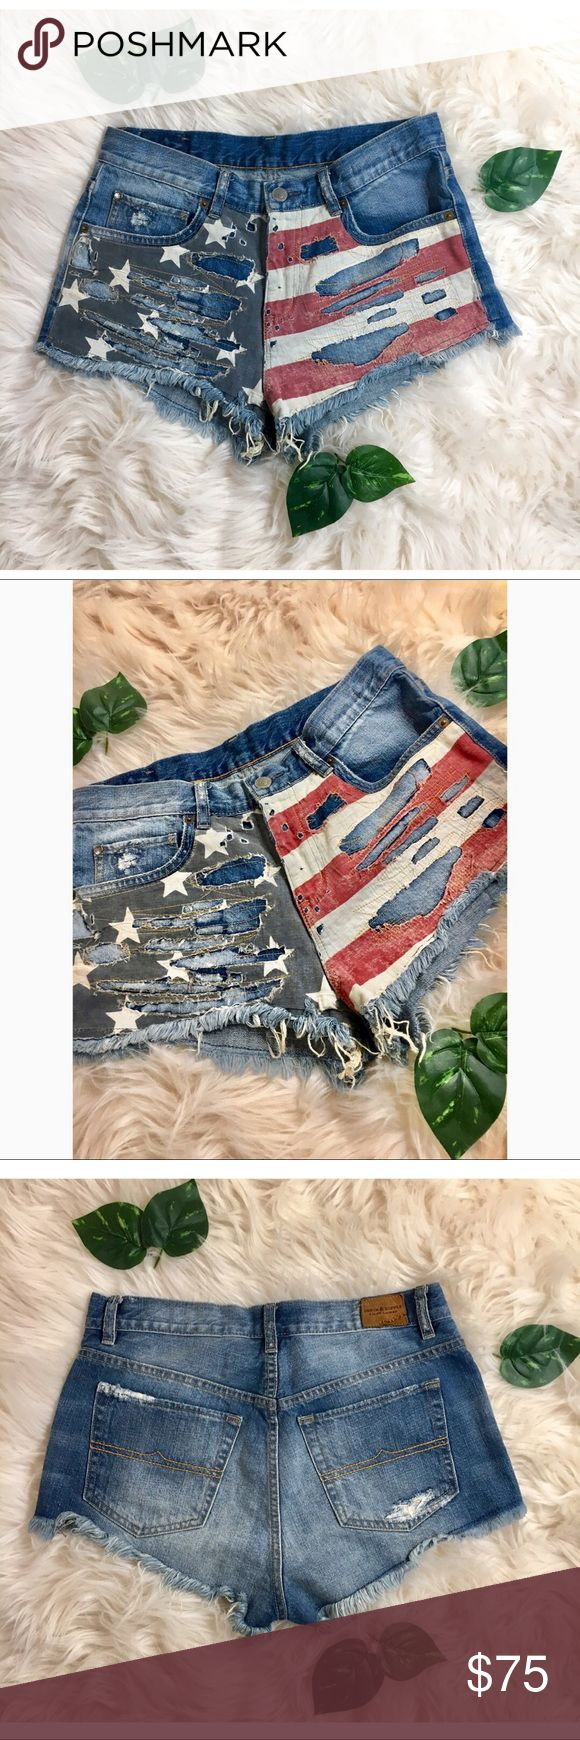 ✨Denim & Supply Distressed Flag Shorts!✨ ✨Denim & Supply Distressed Flag Shorts! In great condition! I'm open to any offers and bundles are better!✨  ✨MATERIAL✨ ✨100% Cotton✨  ✨MEASUREMENTS✨ ✨Waist: 29 inches, Inseam: 1.5 inches, Outseam: 9.5 inches, Leg Opening: 21 inches, Front Rise: 10 inches,  Back Rise: 10 inches, Back Rise: 15 inches, Hips: 40 inches✨  ✨Have a wonderful day!✨ Denim & Supply Ralph Lauren Shorts